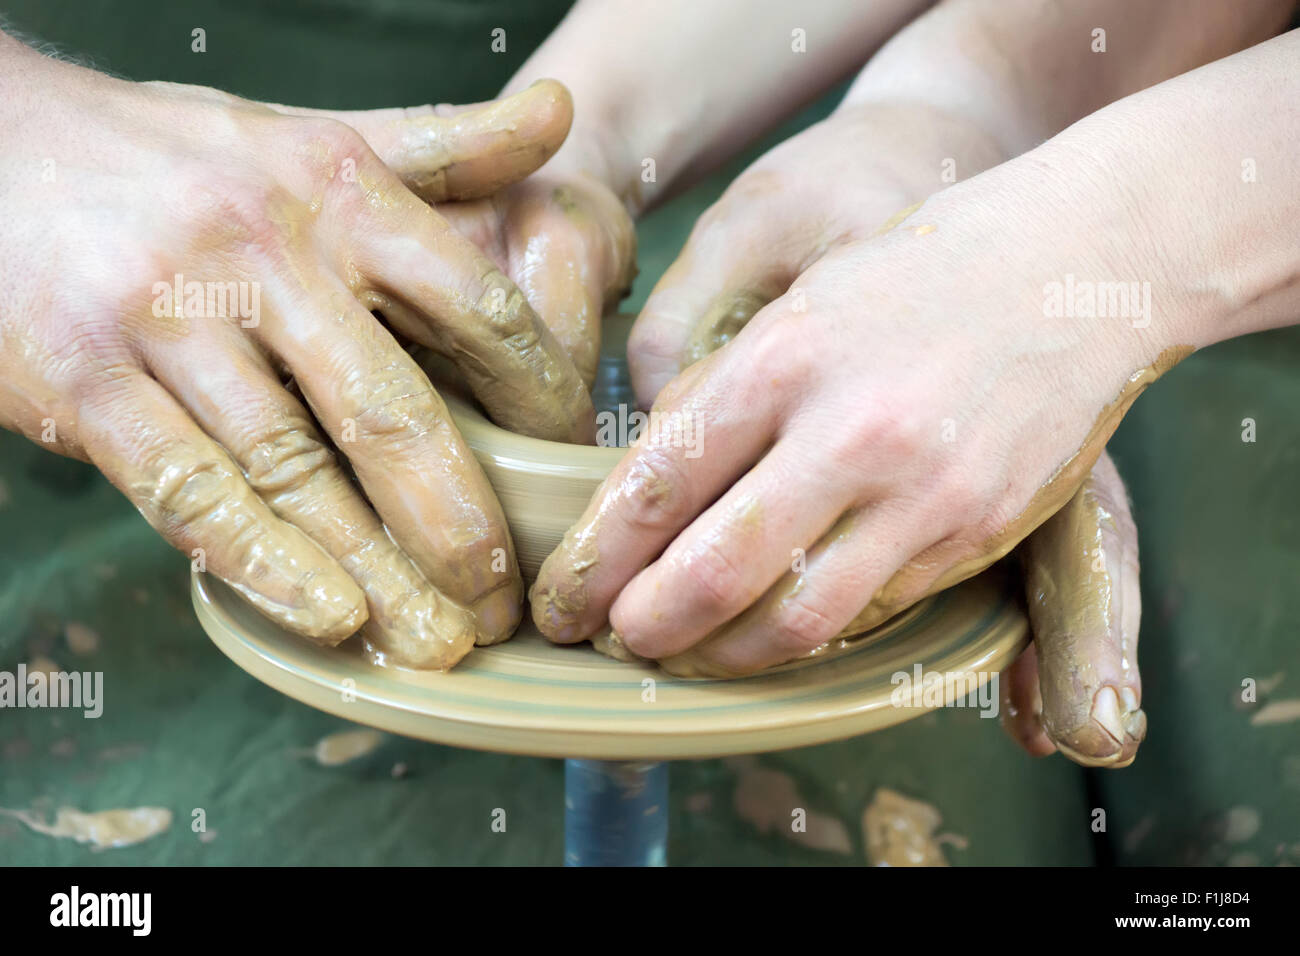 A potters hands guiding a novice hands to help him - Stock Image